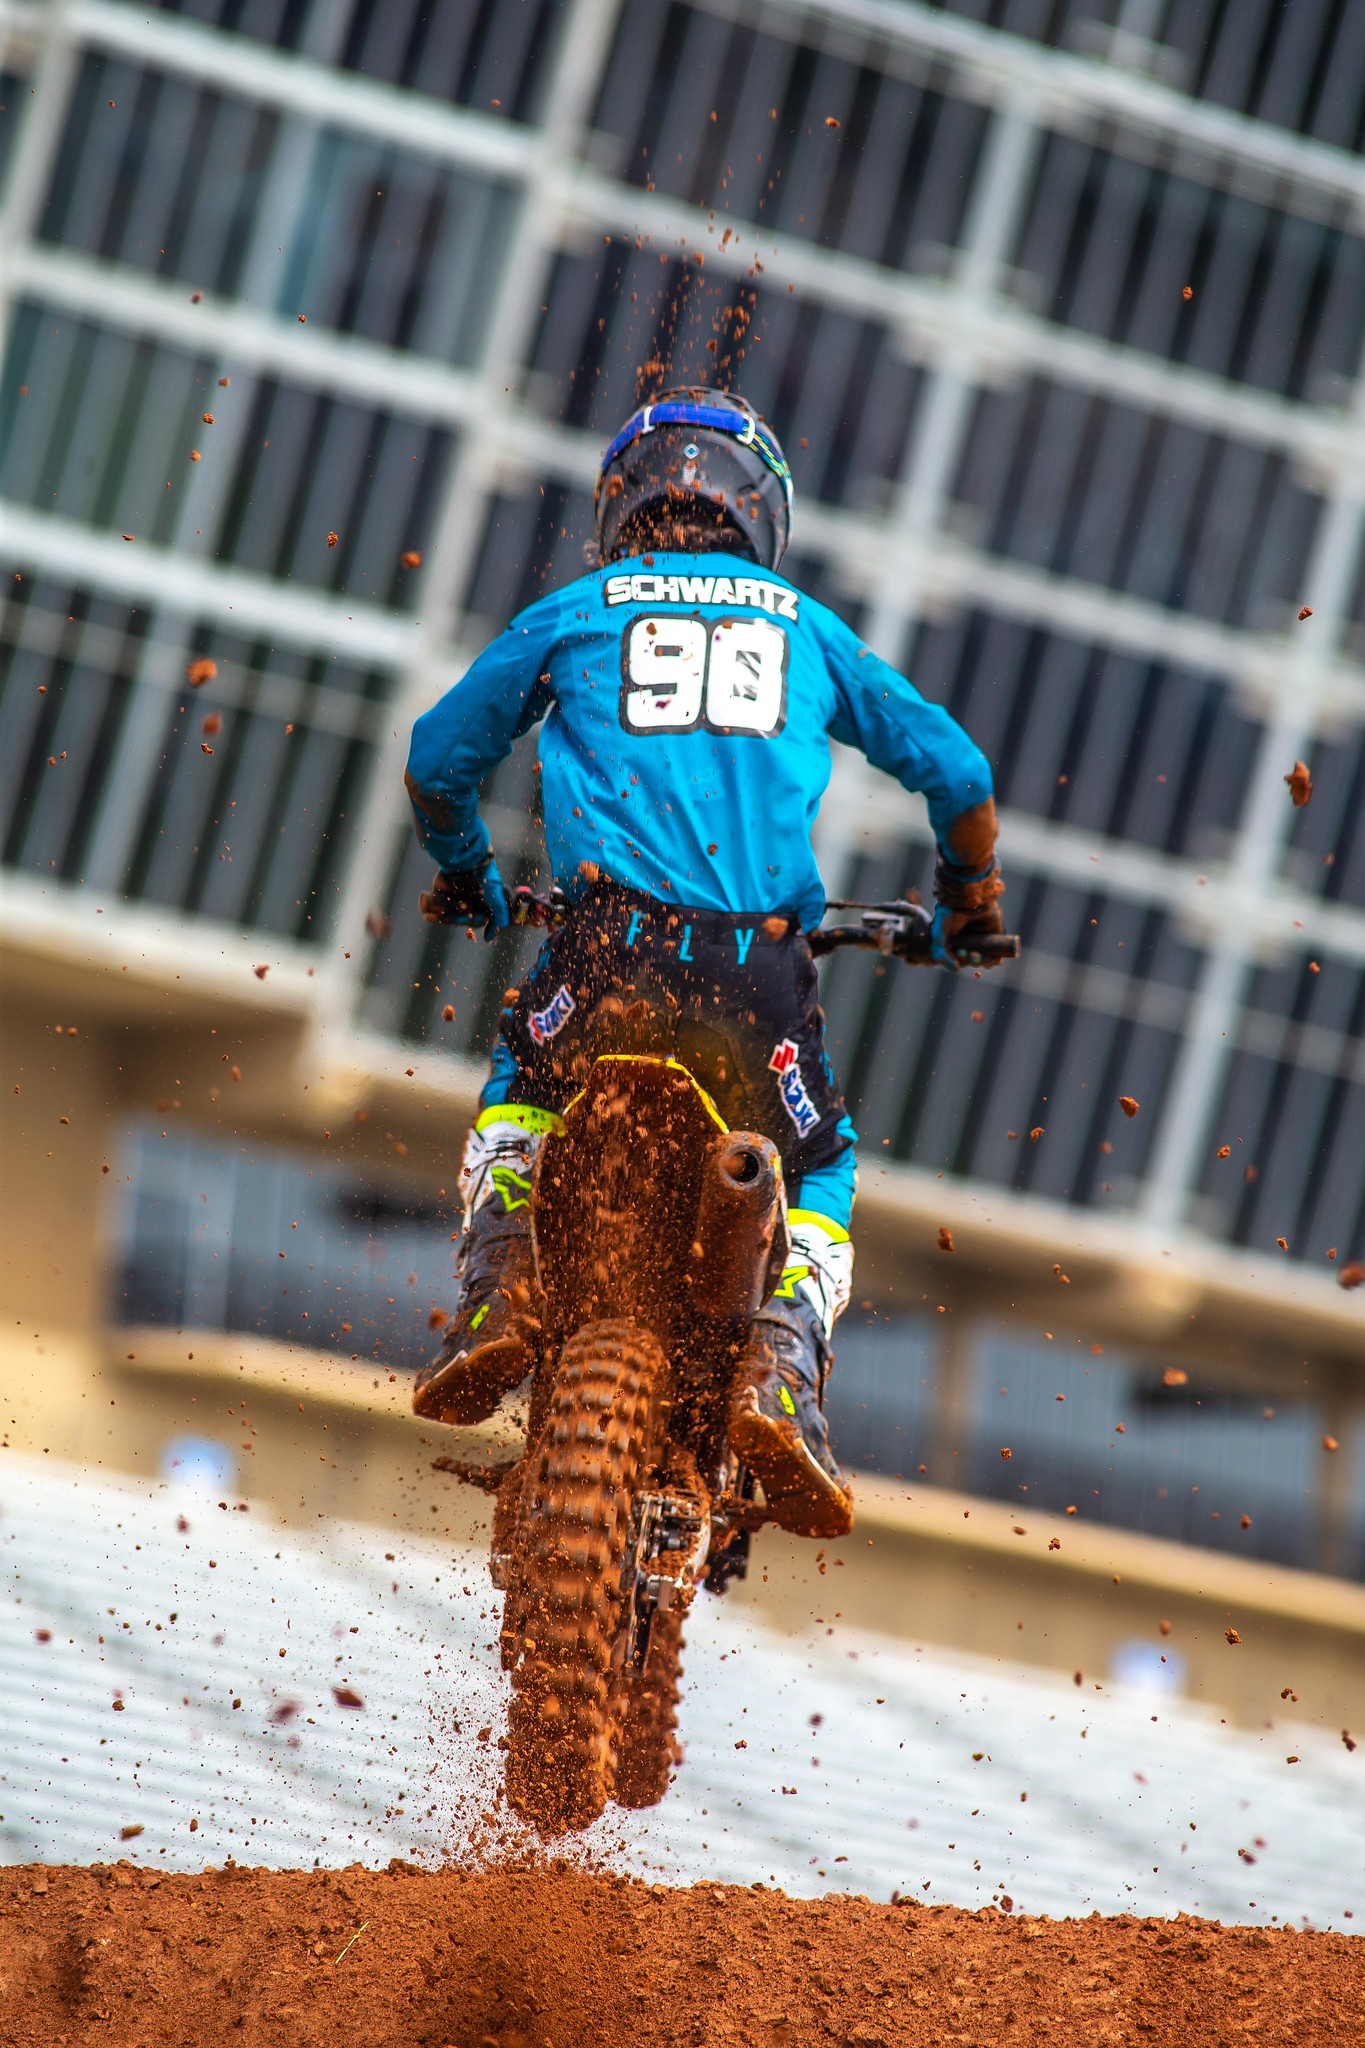 Dilan Schwartz (90) delivered fast laps in his qualifying session in Atlanta